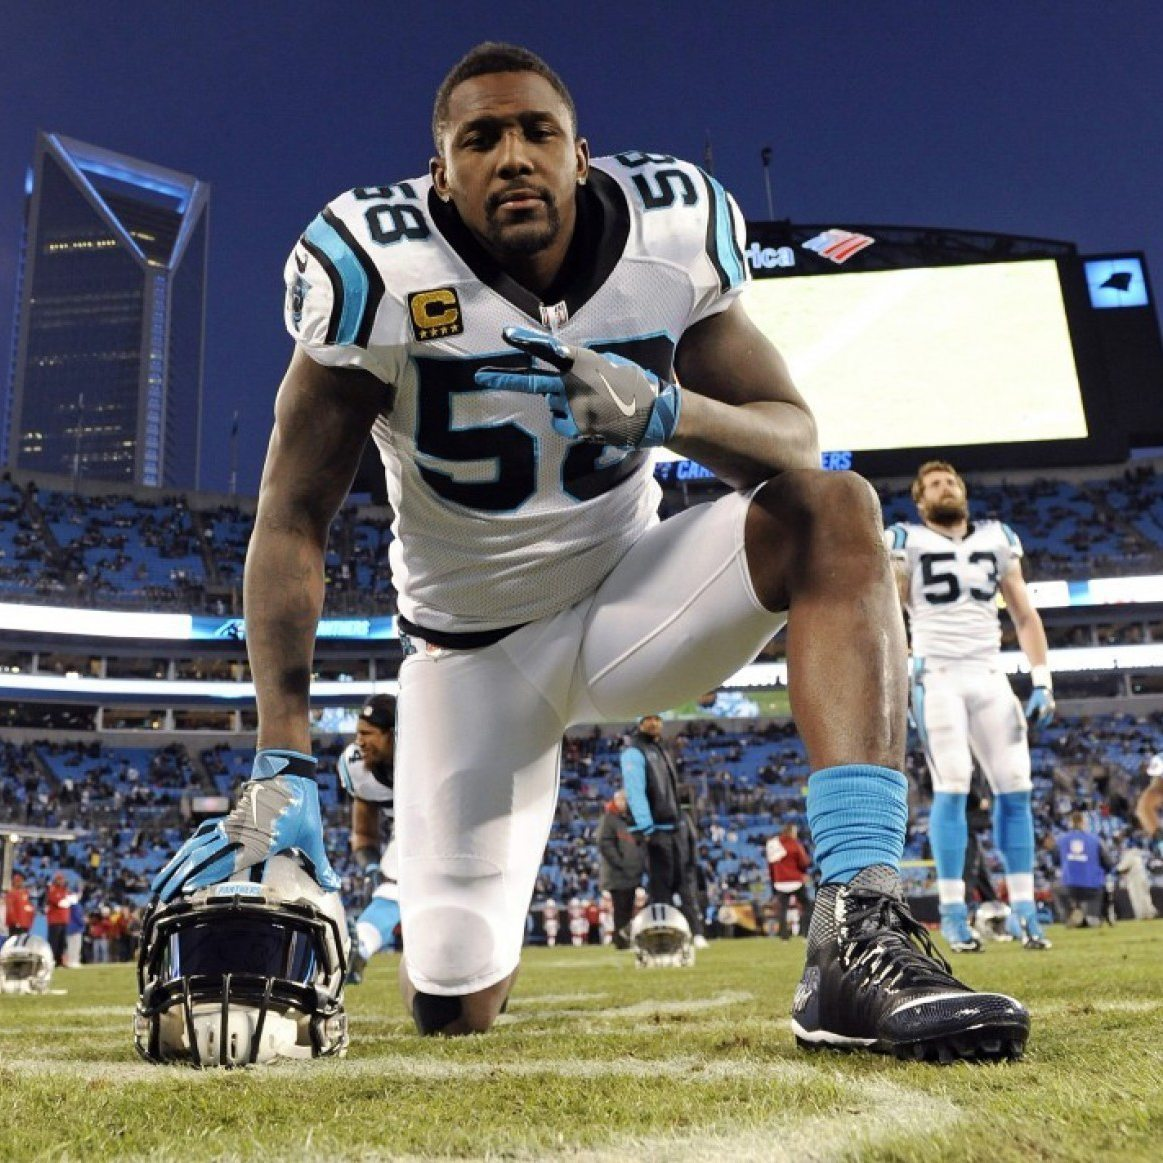 a6d8f6078a7 Panthers Linebacker May Play Super Bowl in 3D Printed Brace - 3D Printing  Industry